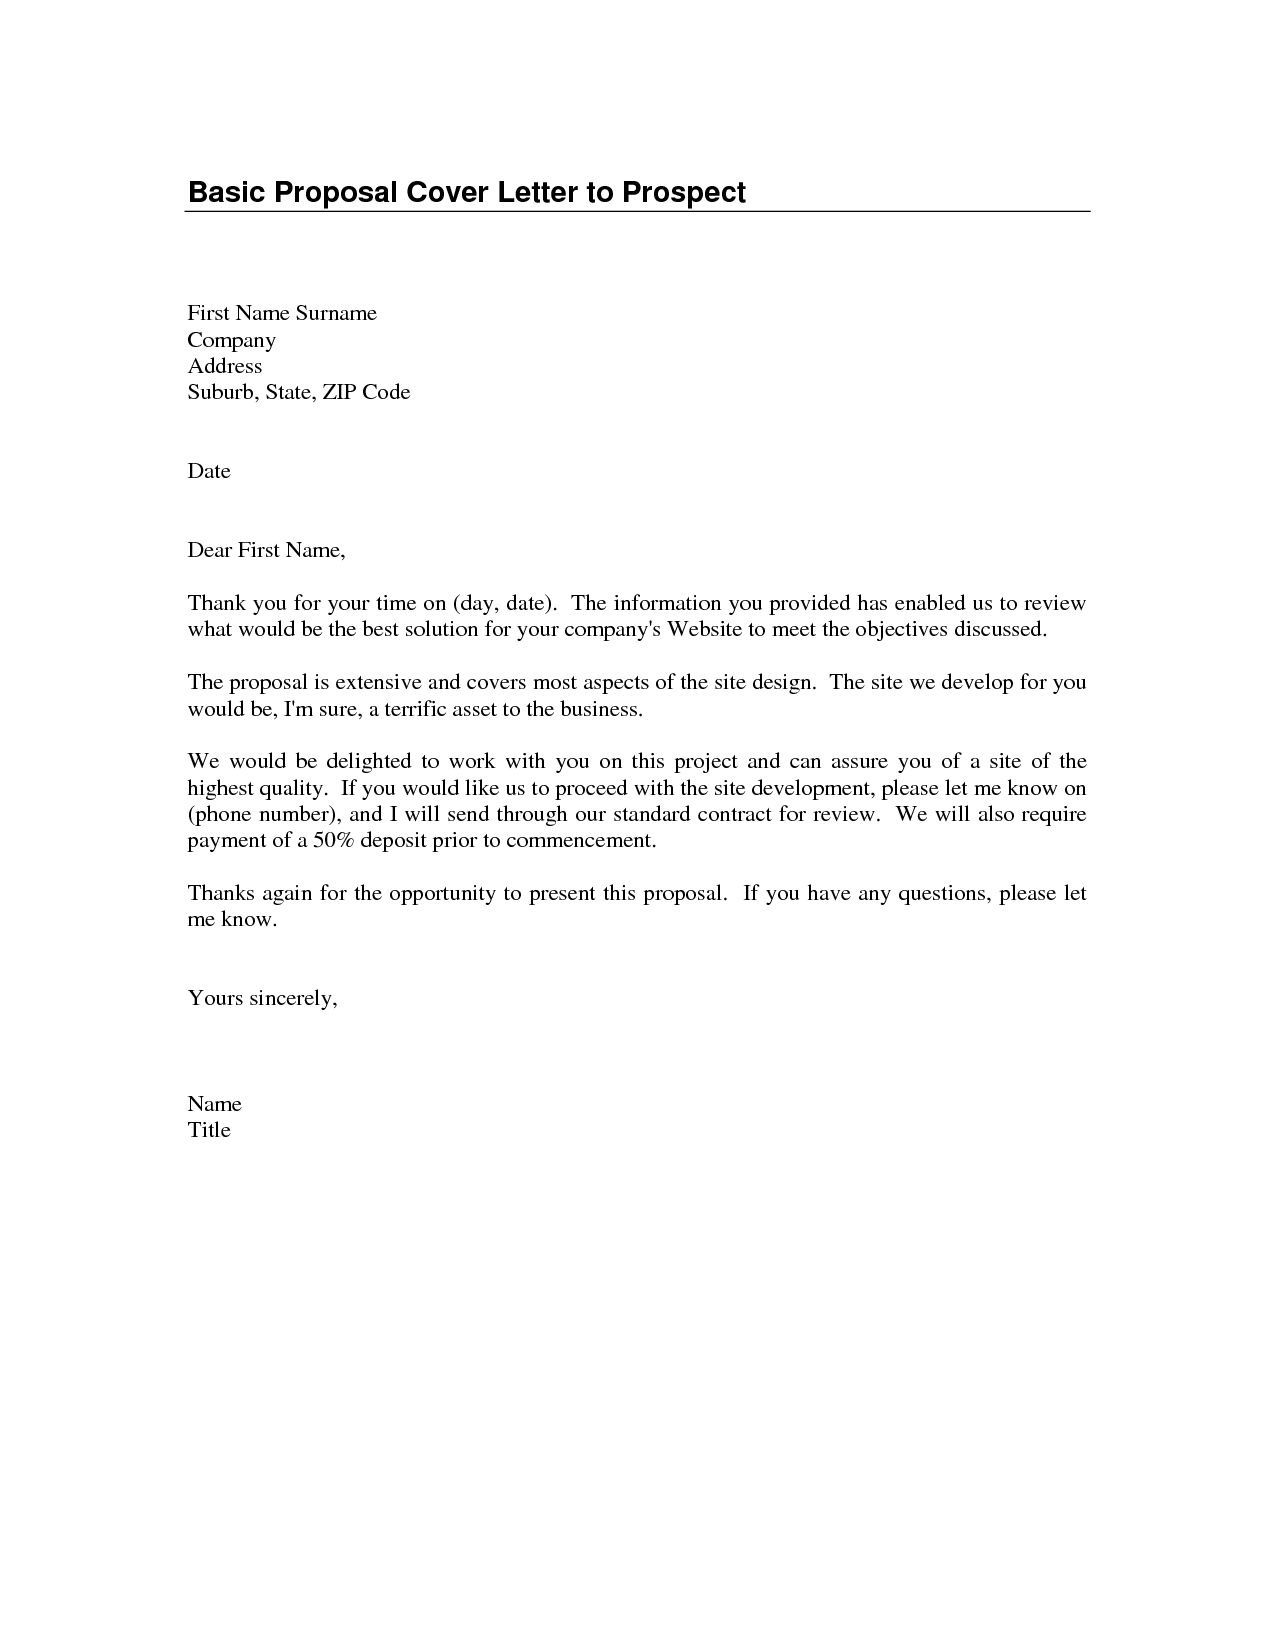 000 Archaicawful Basic Covering Letter Template Picture  Simple Application Job Sample CoverFull